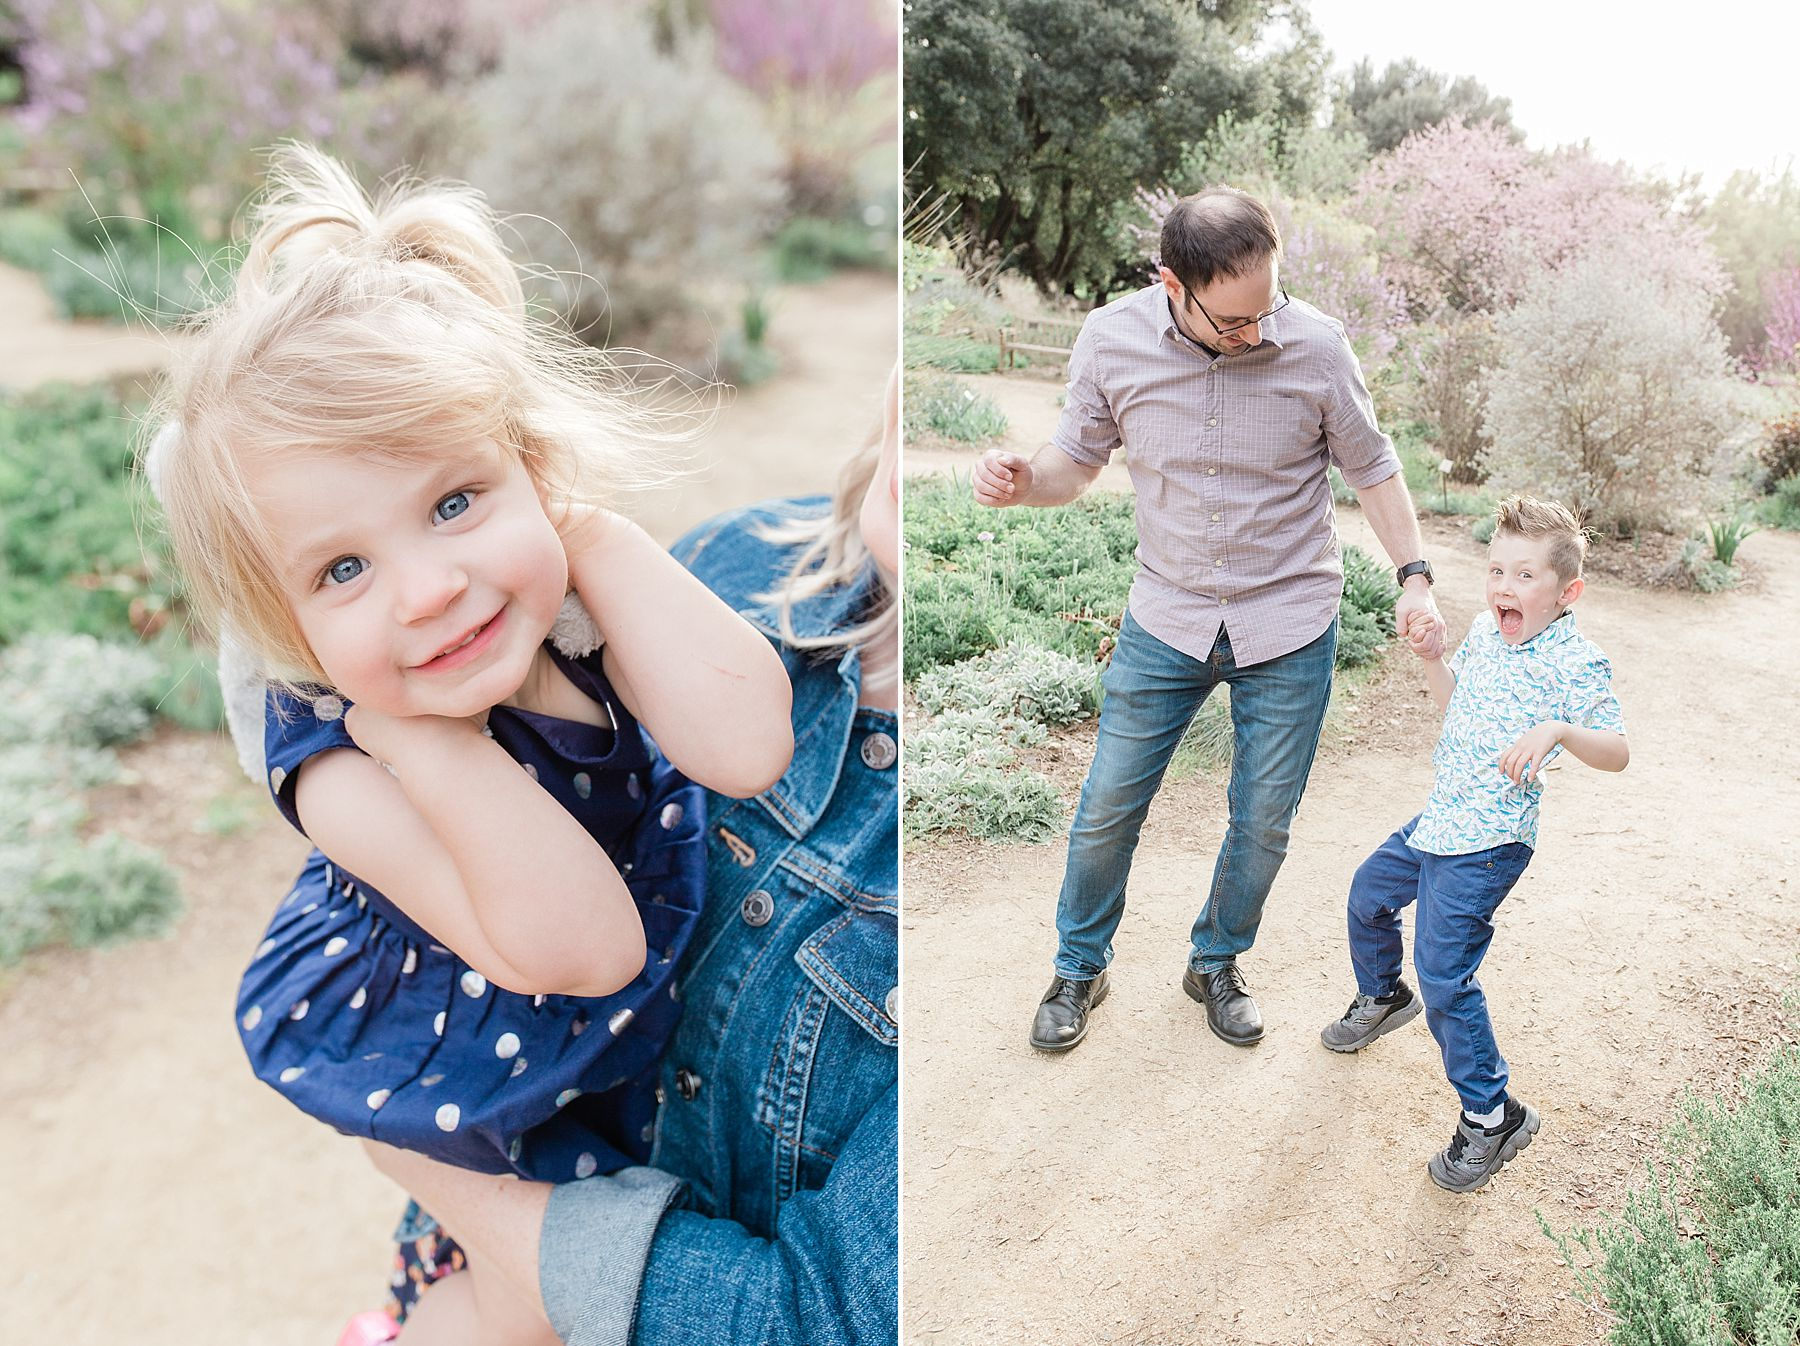 Davis Family Portraits at UC Davis Arboretum - Padovani Family - Ashley Baumgartner - Davis Family Photographer_0006.jpg